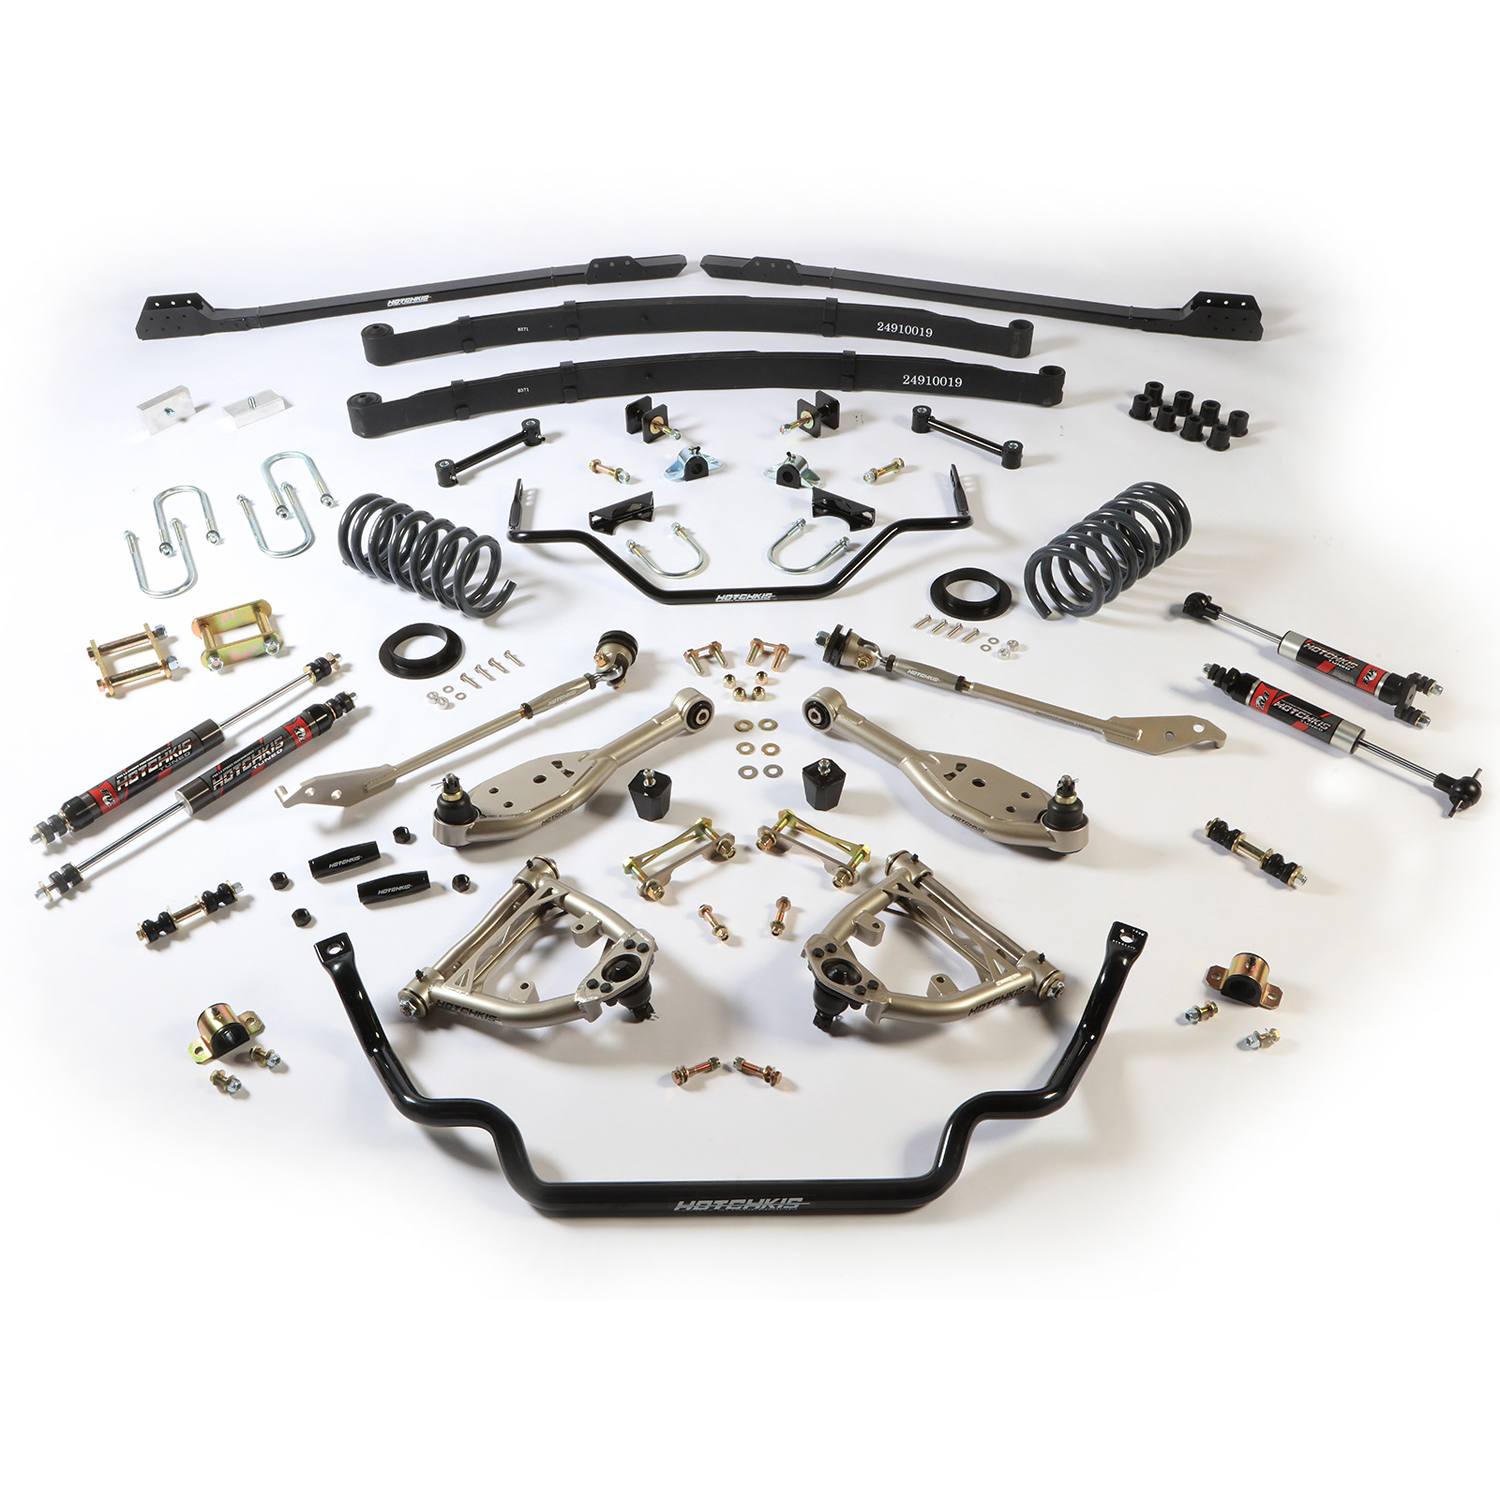 1967-70 Ford Mustang Stage 2 TVS Suspension System, Small Block